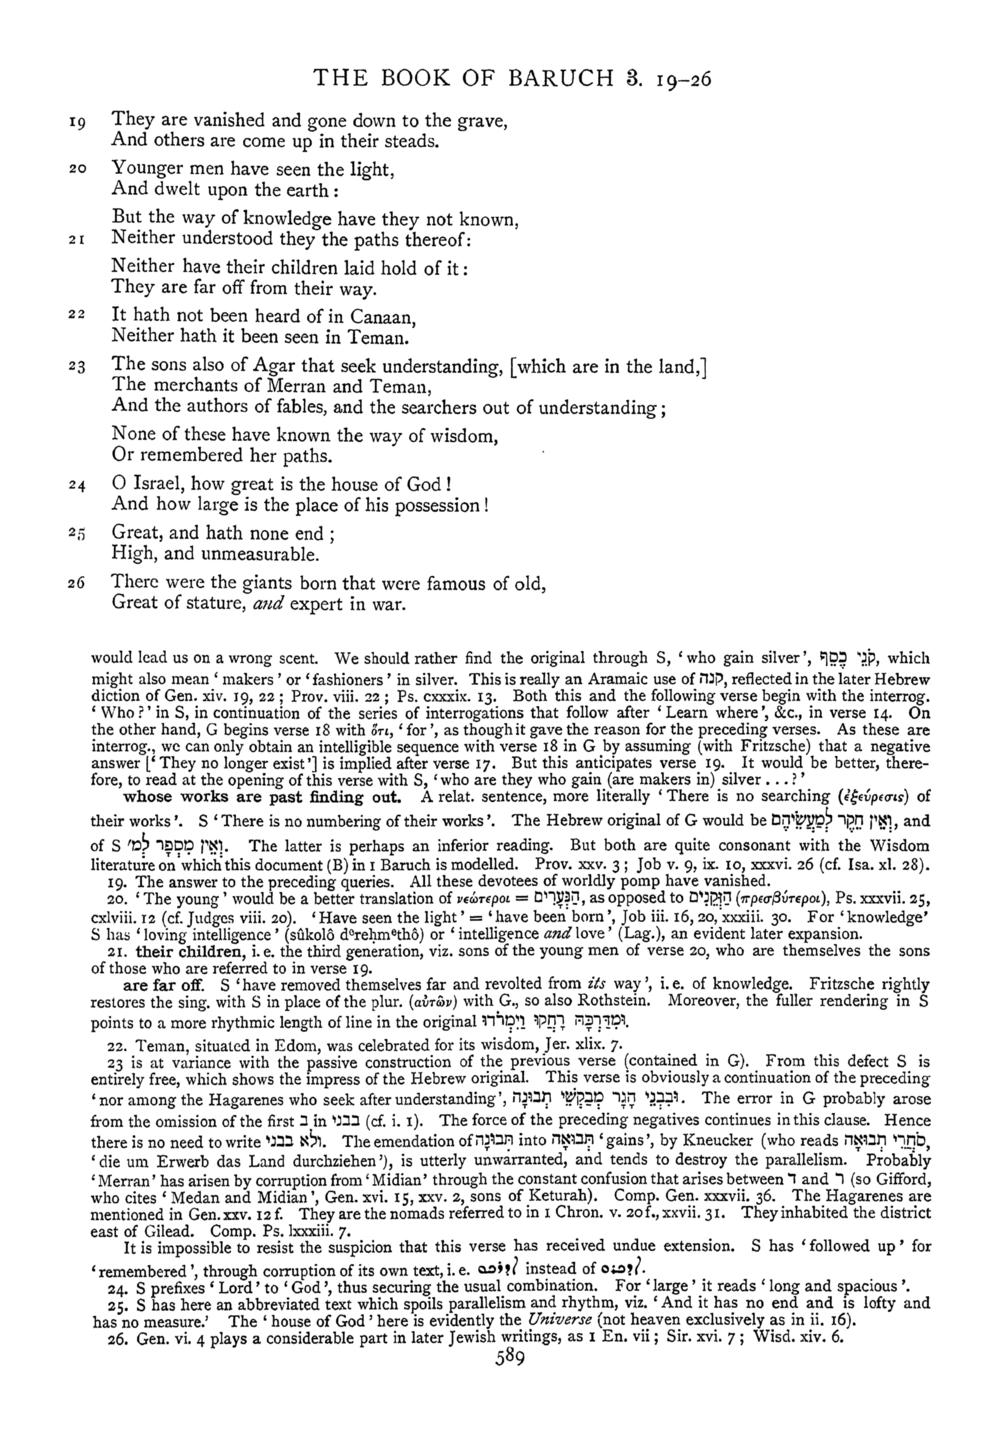 Image of page 589